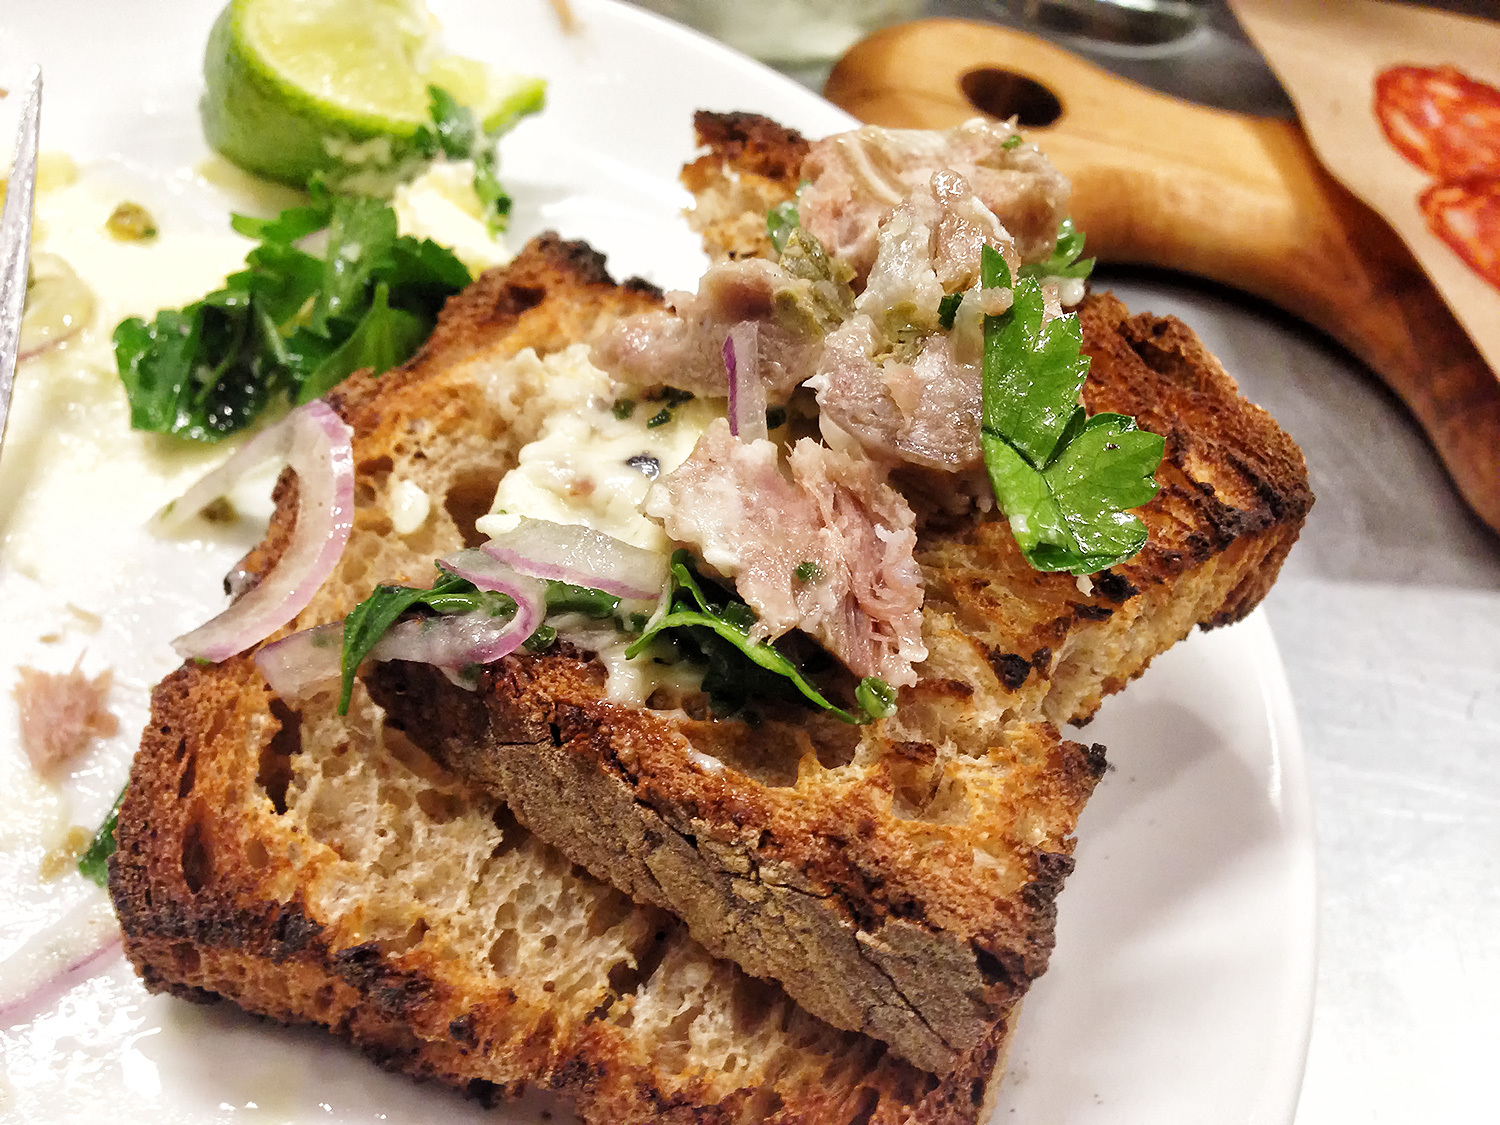 pig's head terrine with butter and toasted bread. (also lime, onions and parsley)